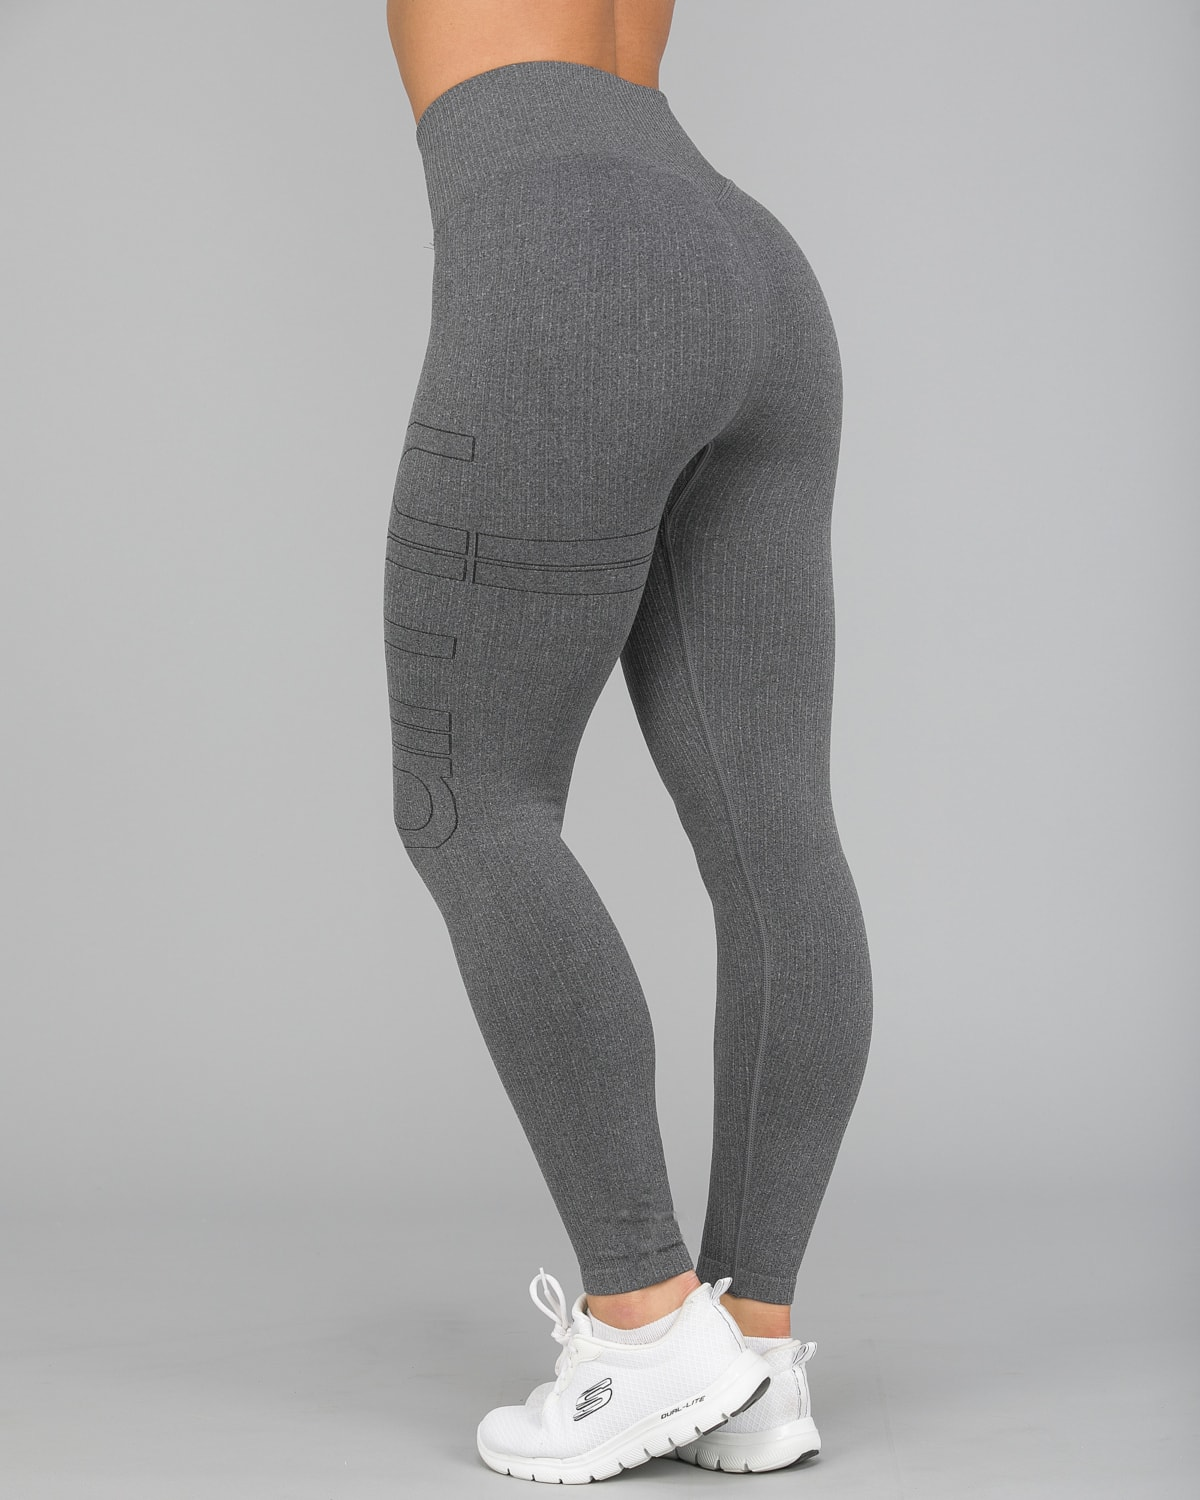 Aim'n Grey Ribbed Seamless Tights4